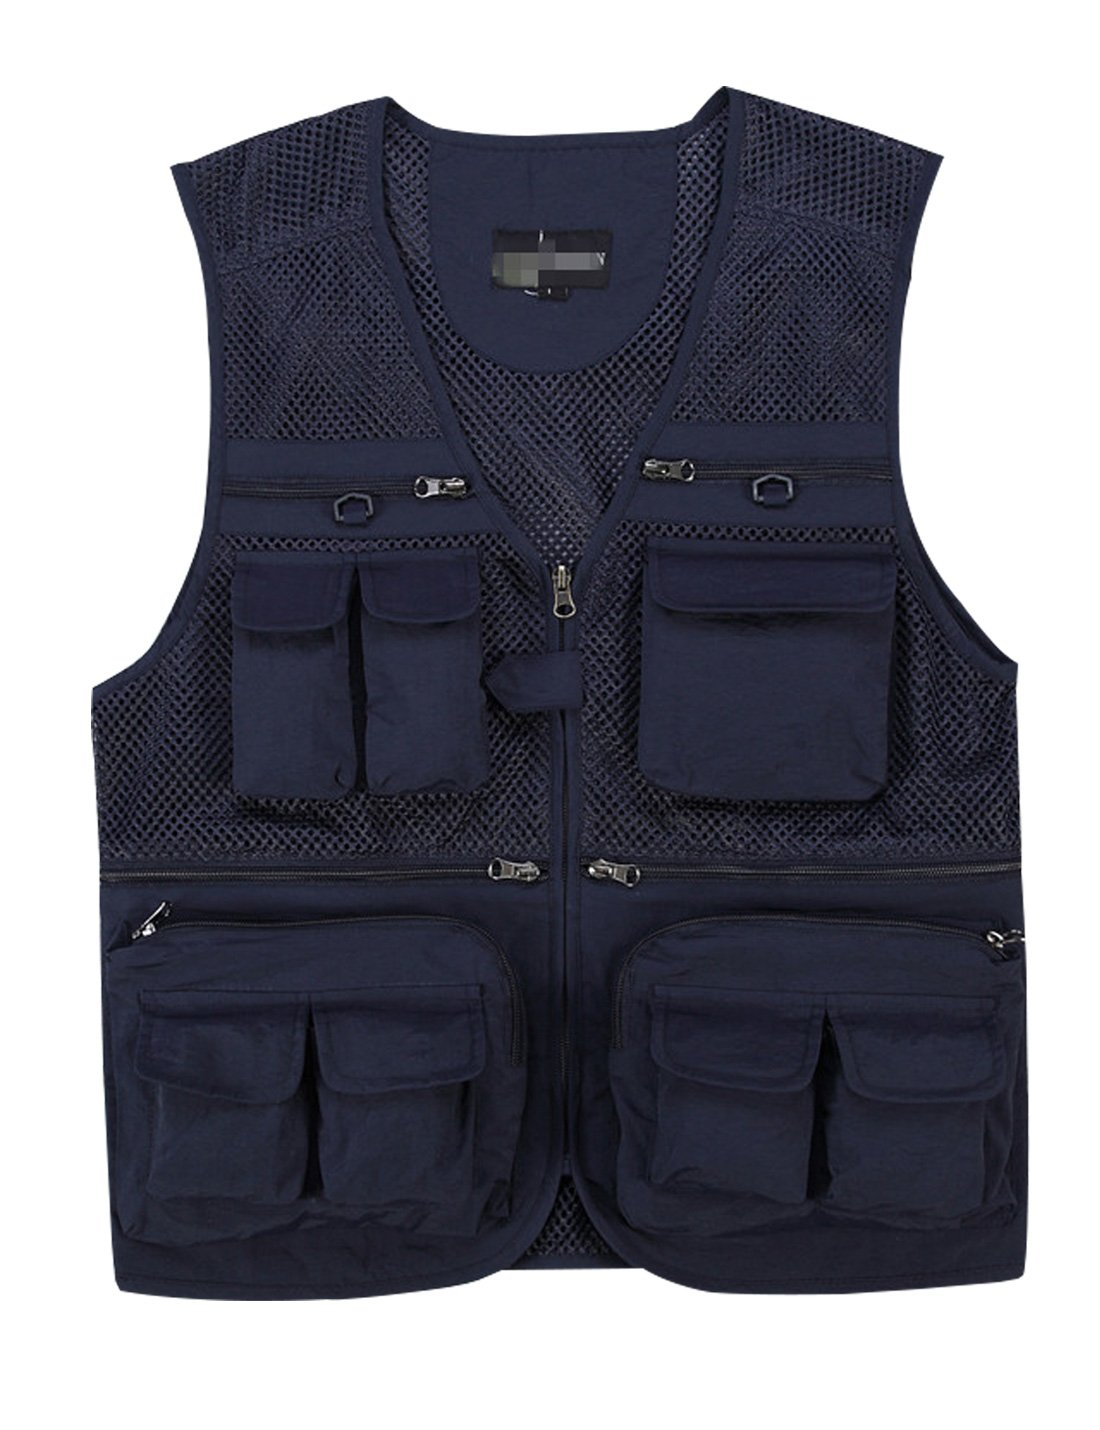 Gihuo Men's Summer Cotton Leisure Outdoor Pockets Fish Photo Journalist Vest Plus Size (Large, Navy-mesh) by Gihuo